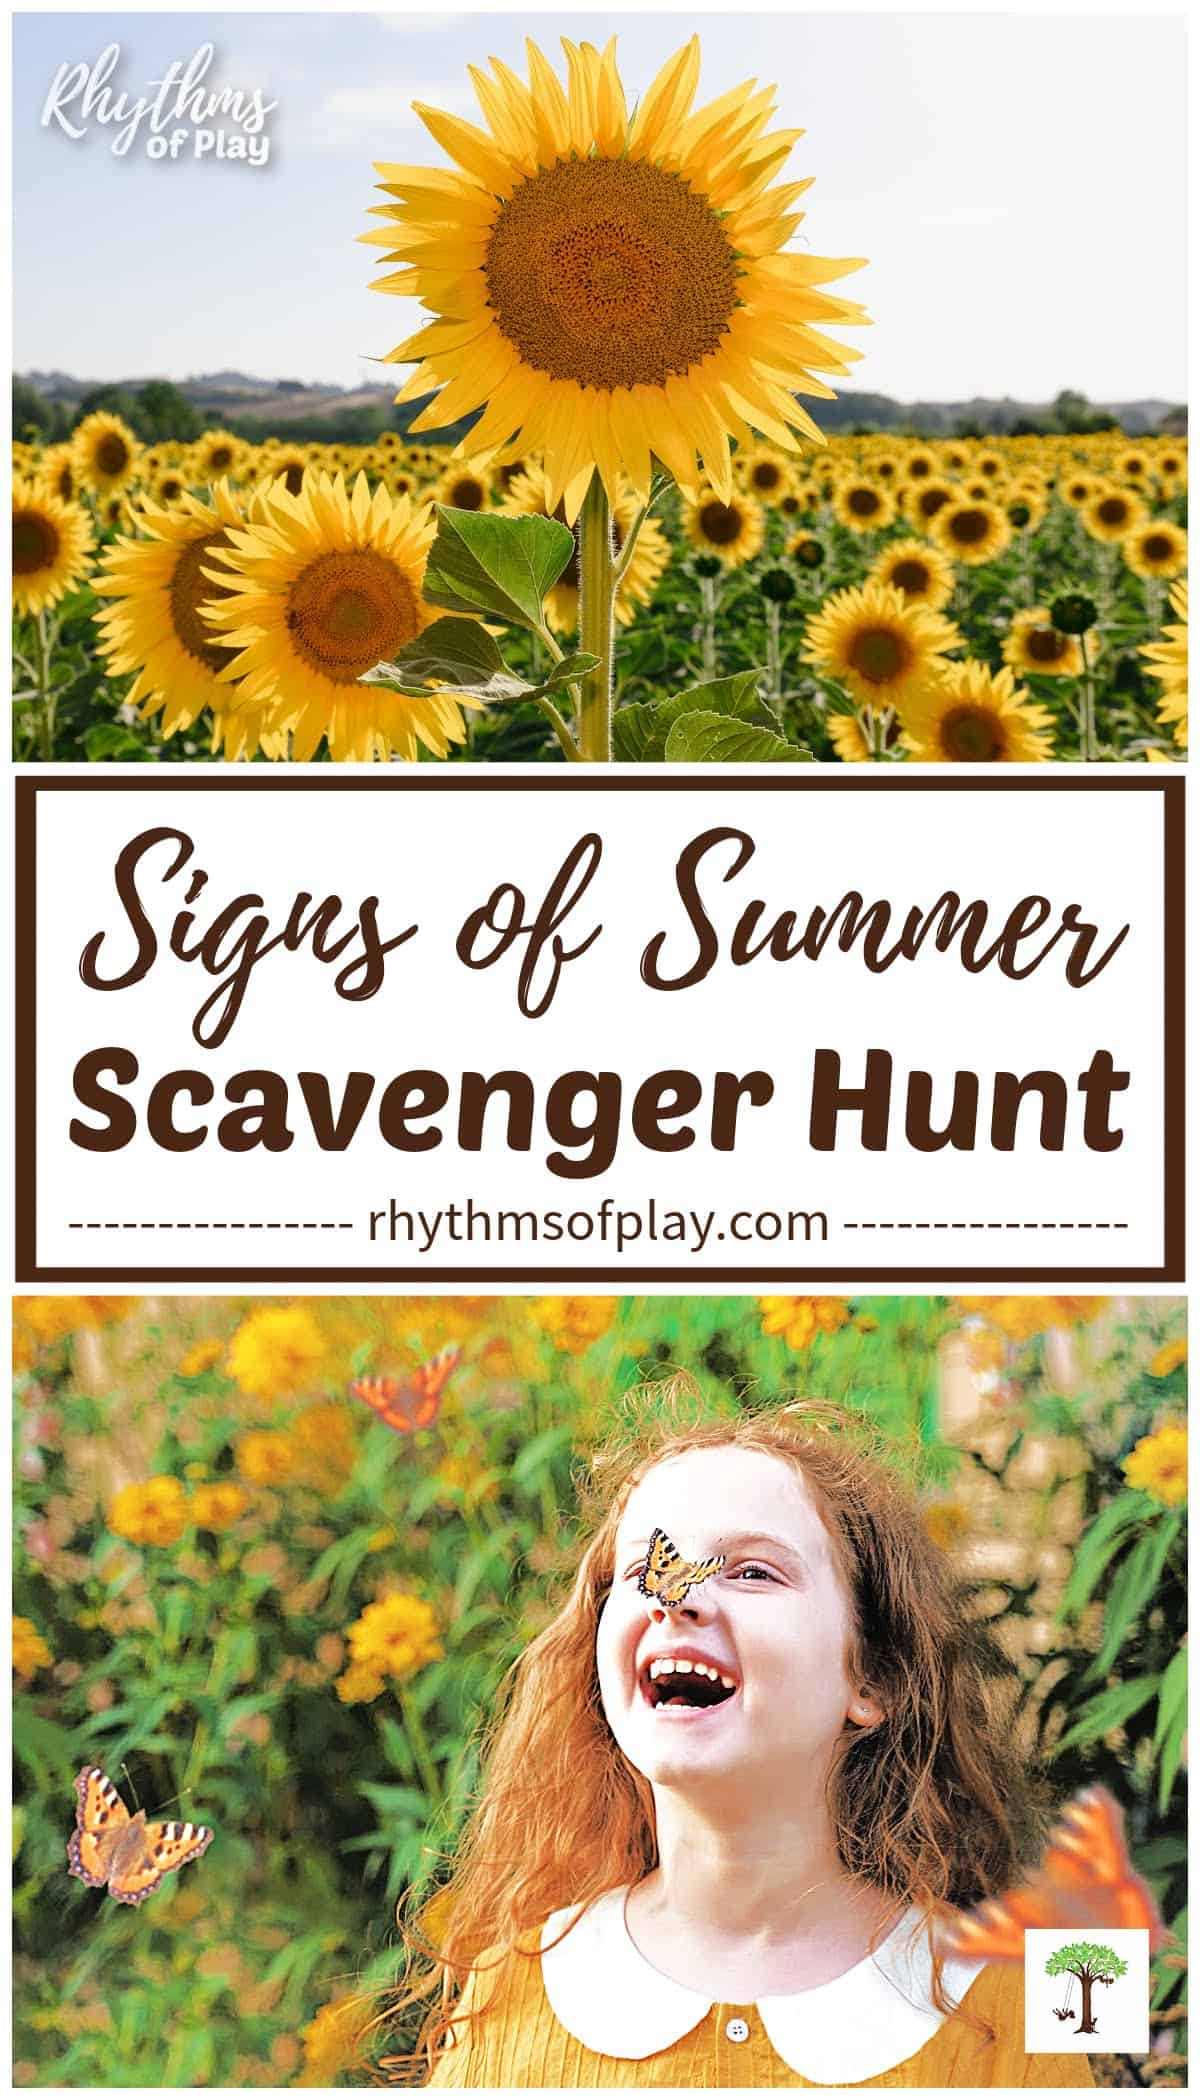 signs of summer; a sunflower taller than the rest and a butterfly on a girls nose in a field of flowers.